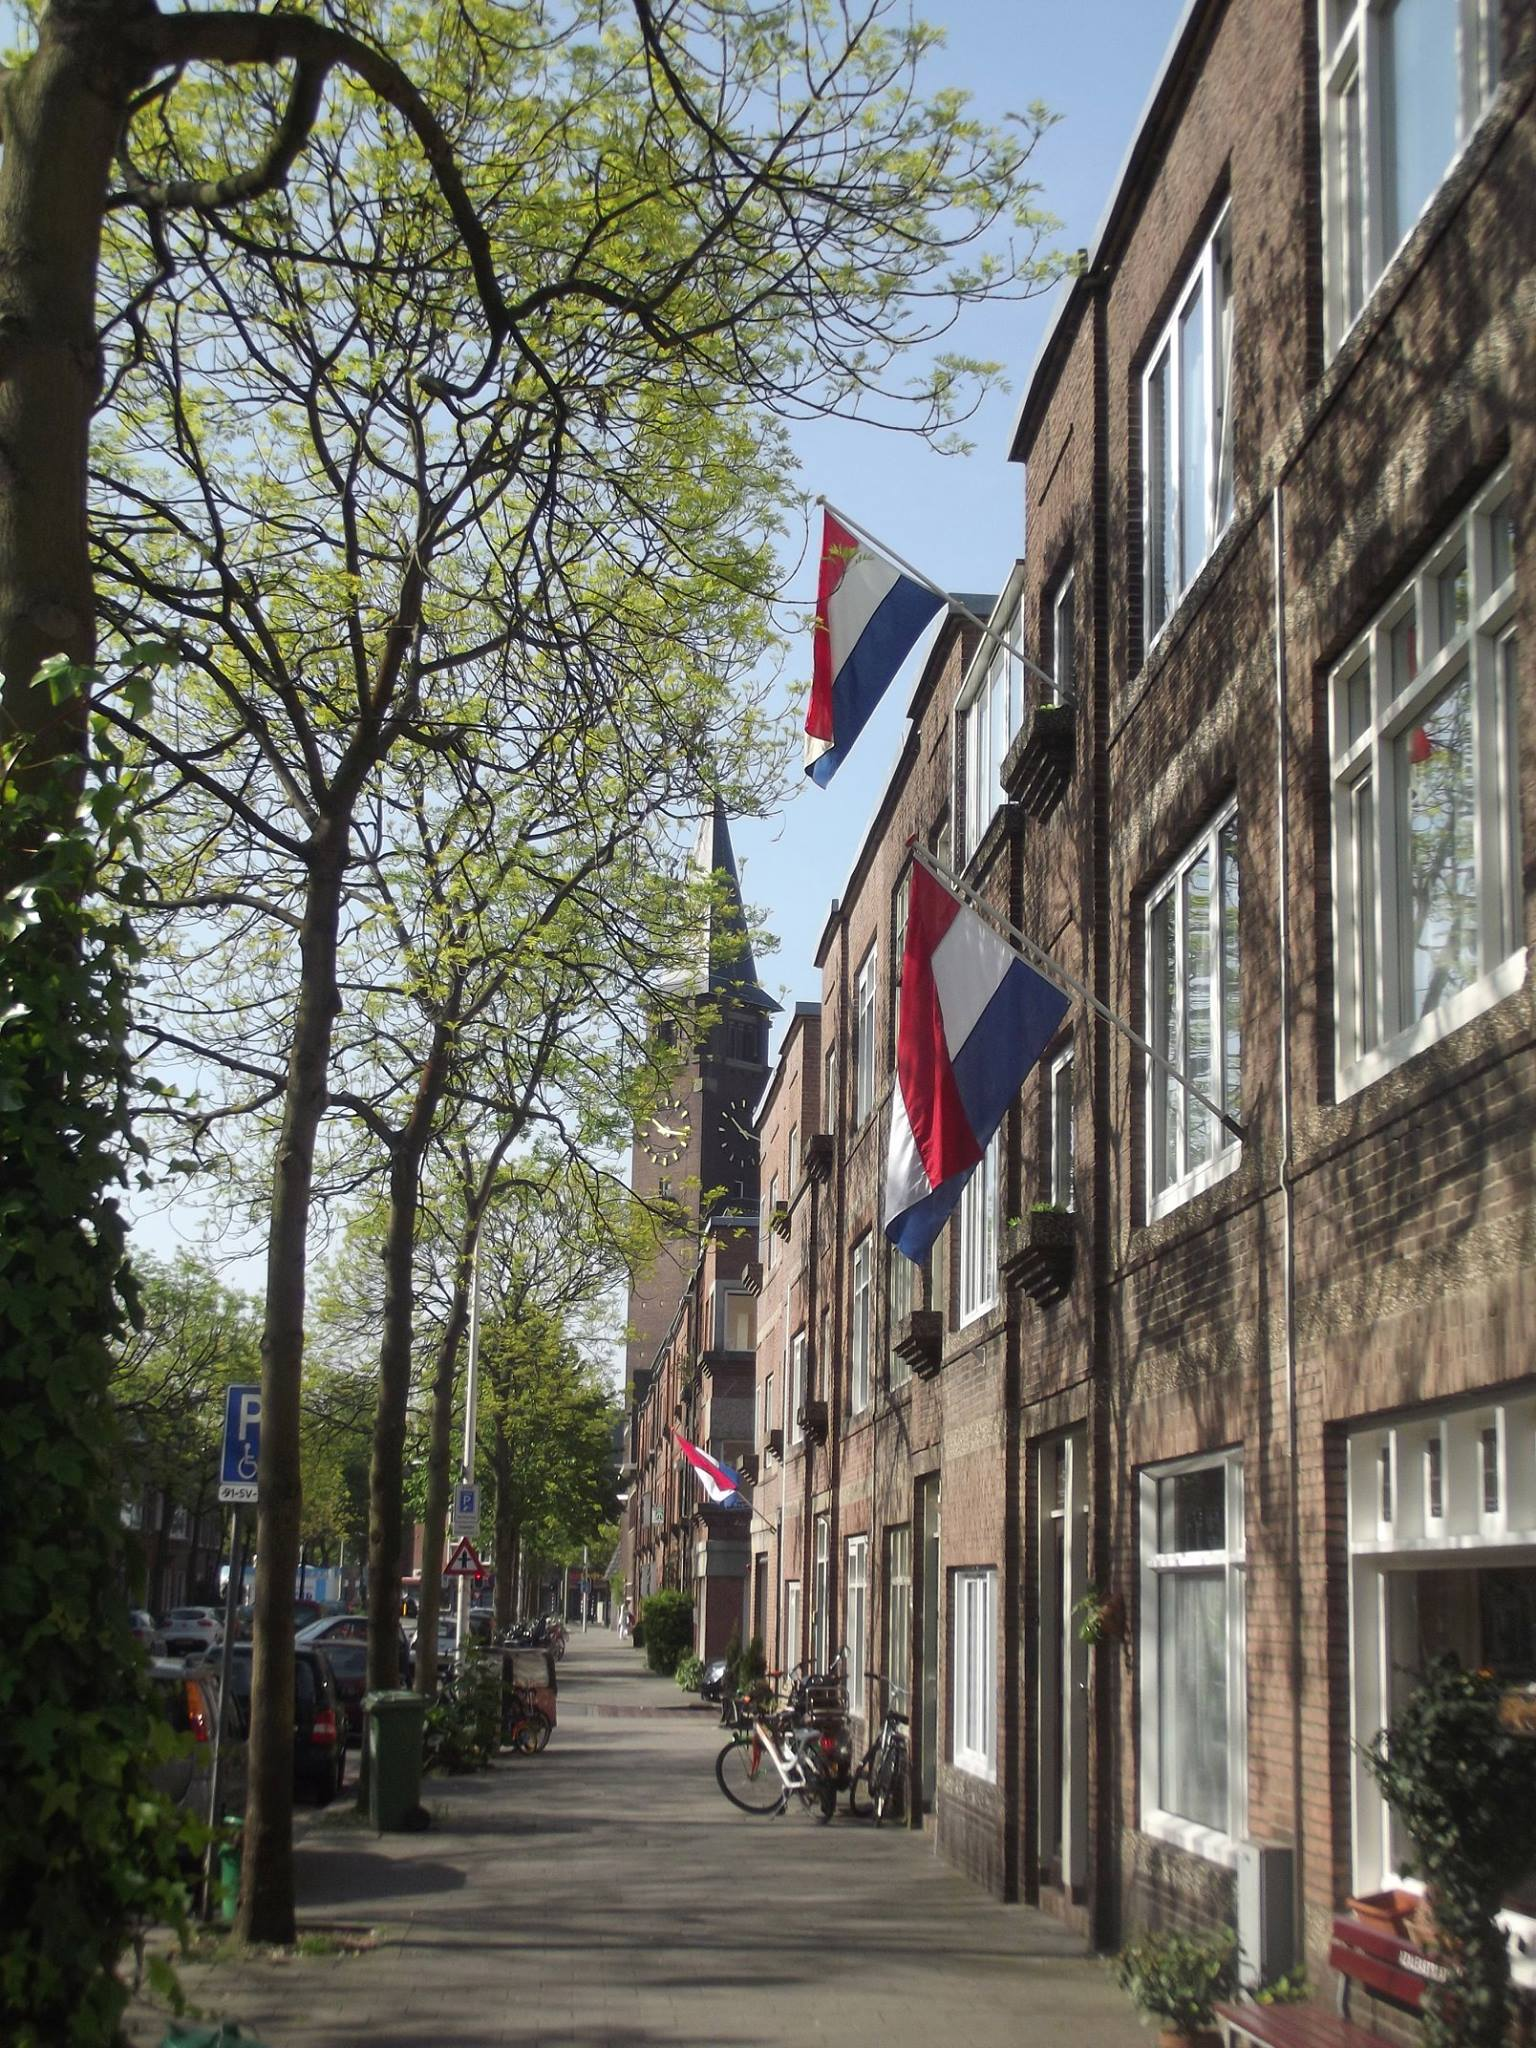 Dutch Flags flying in the street on Liberation Day, May 5.